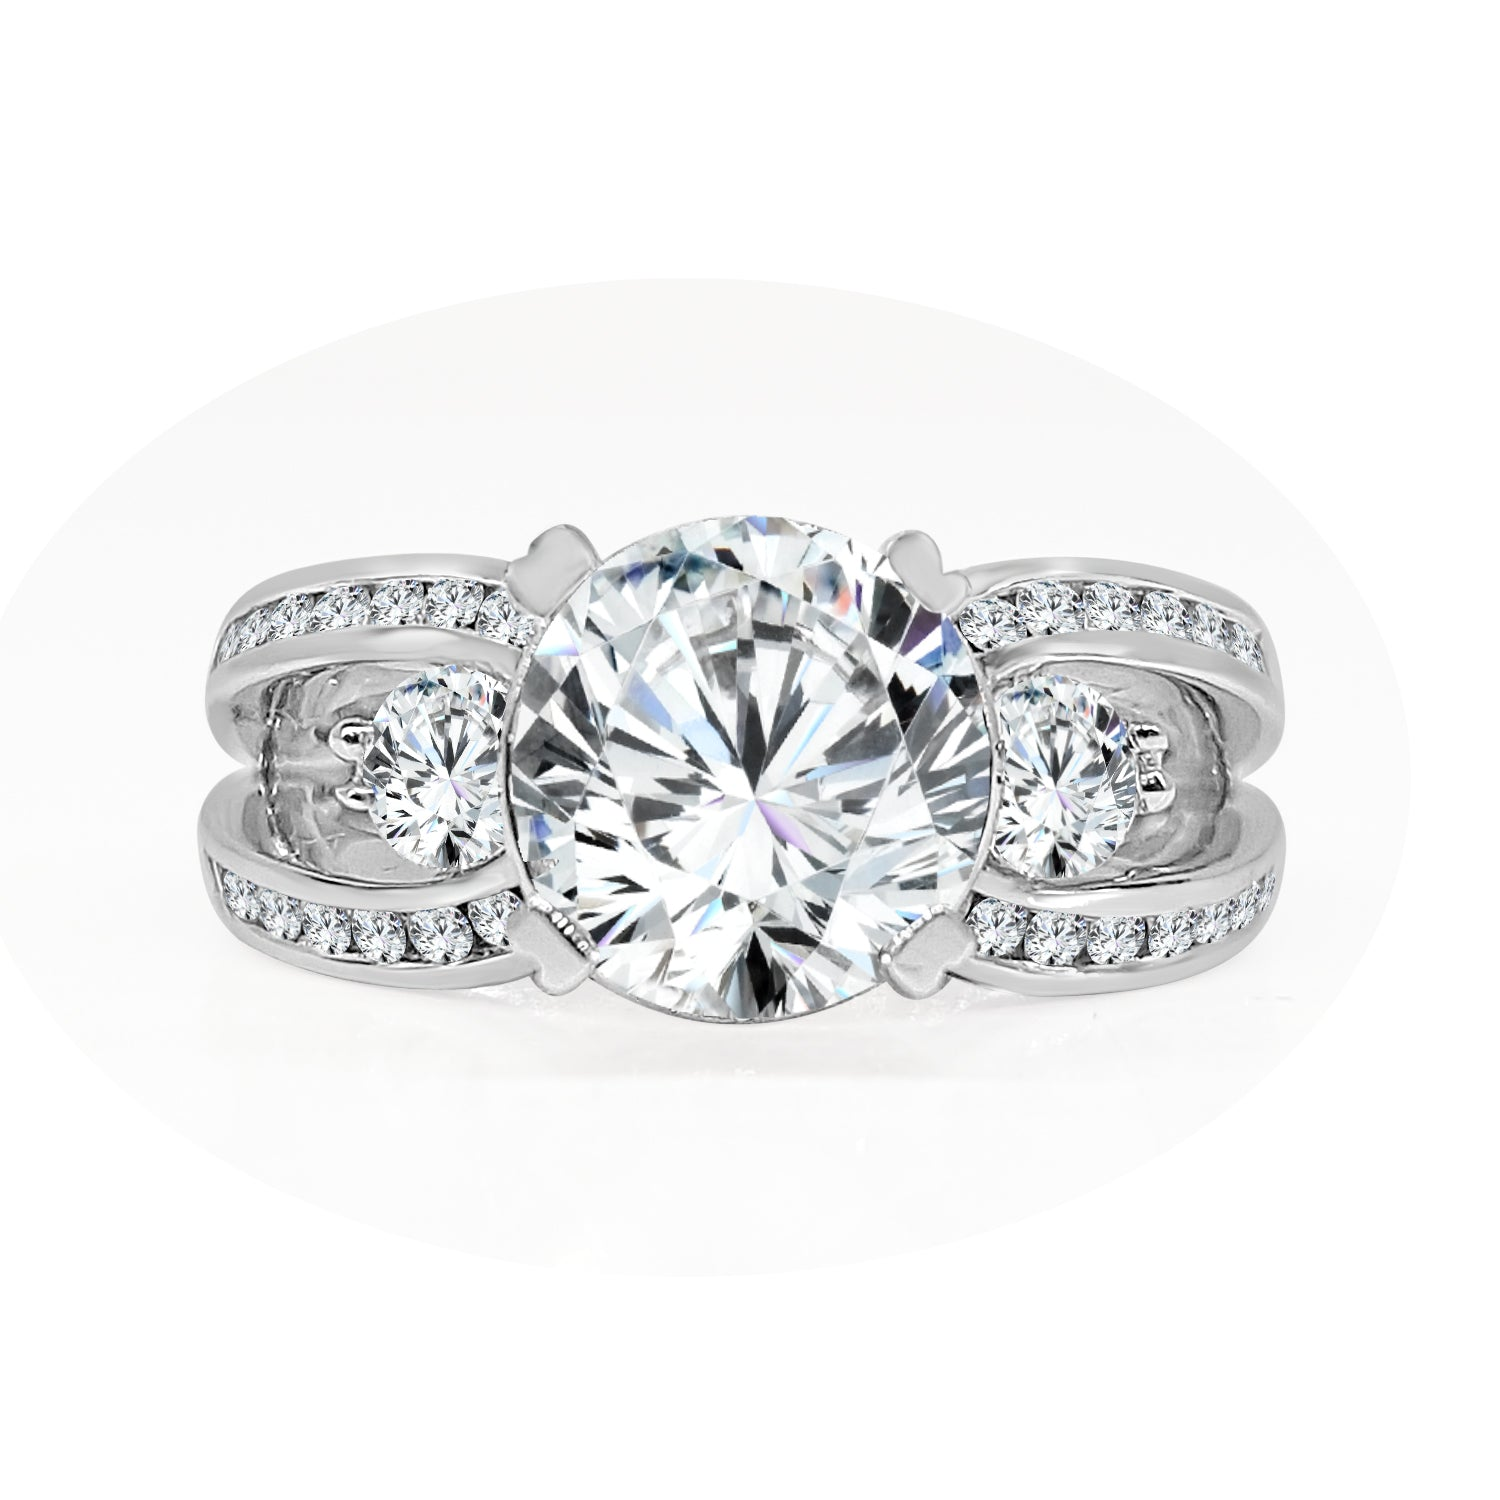 Double Band Engagement Ring With Fancy Mounting